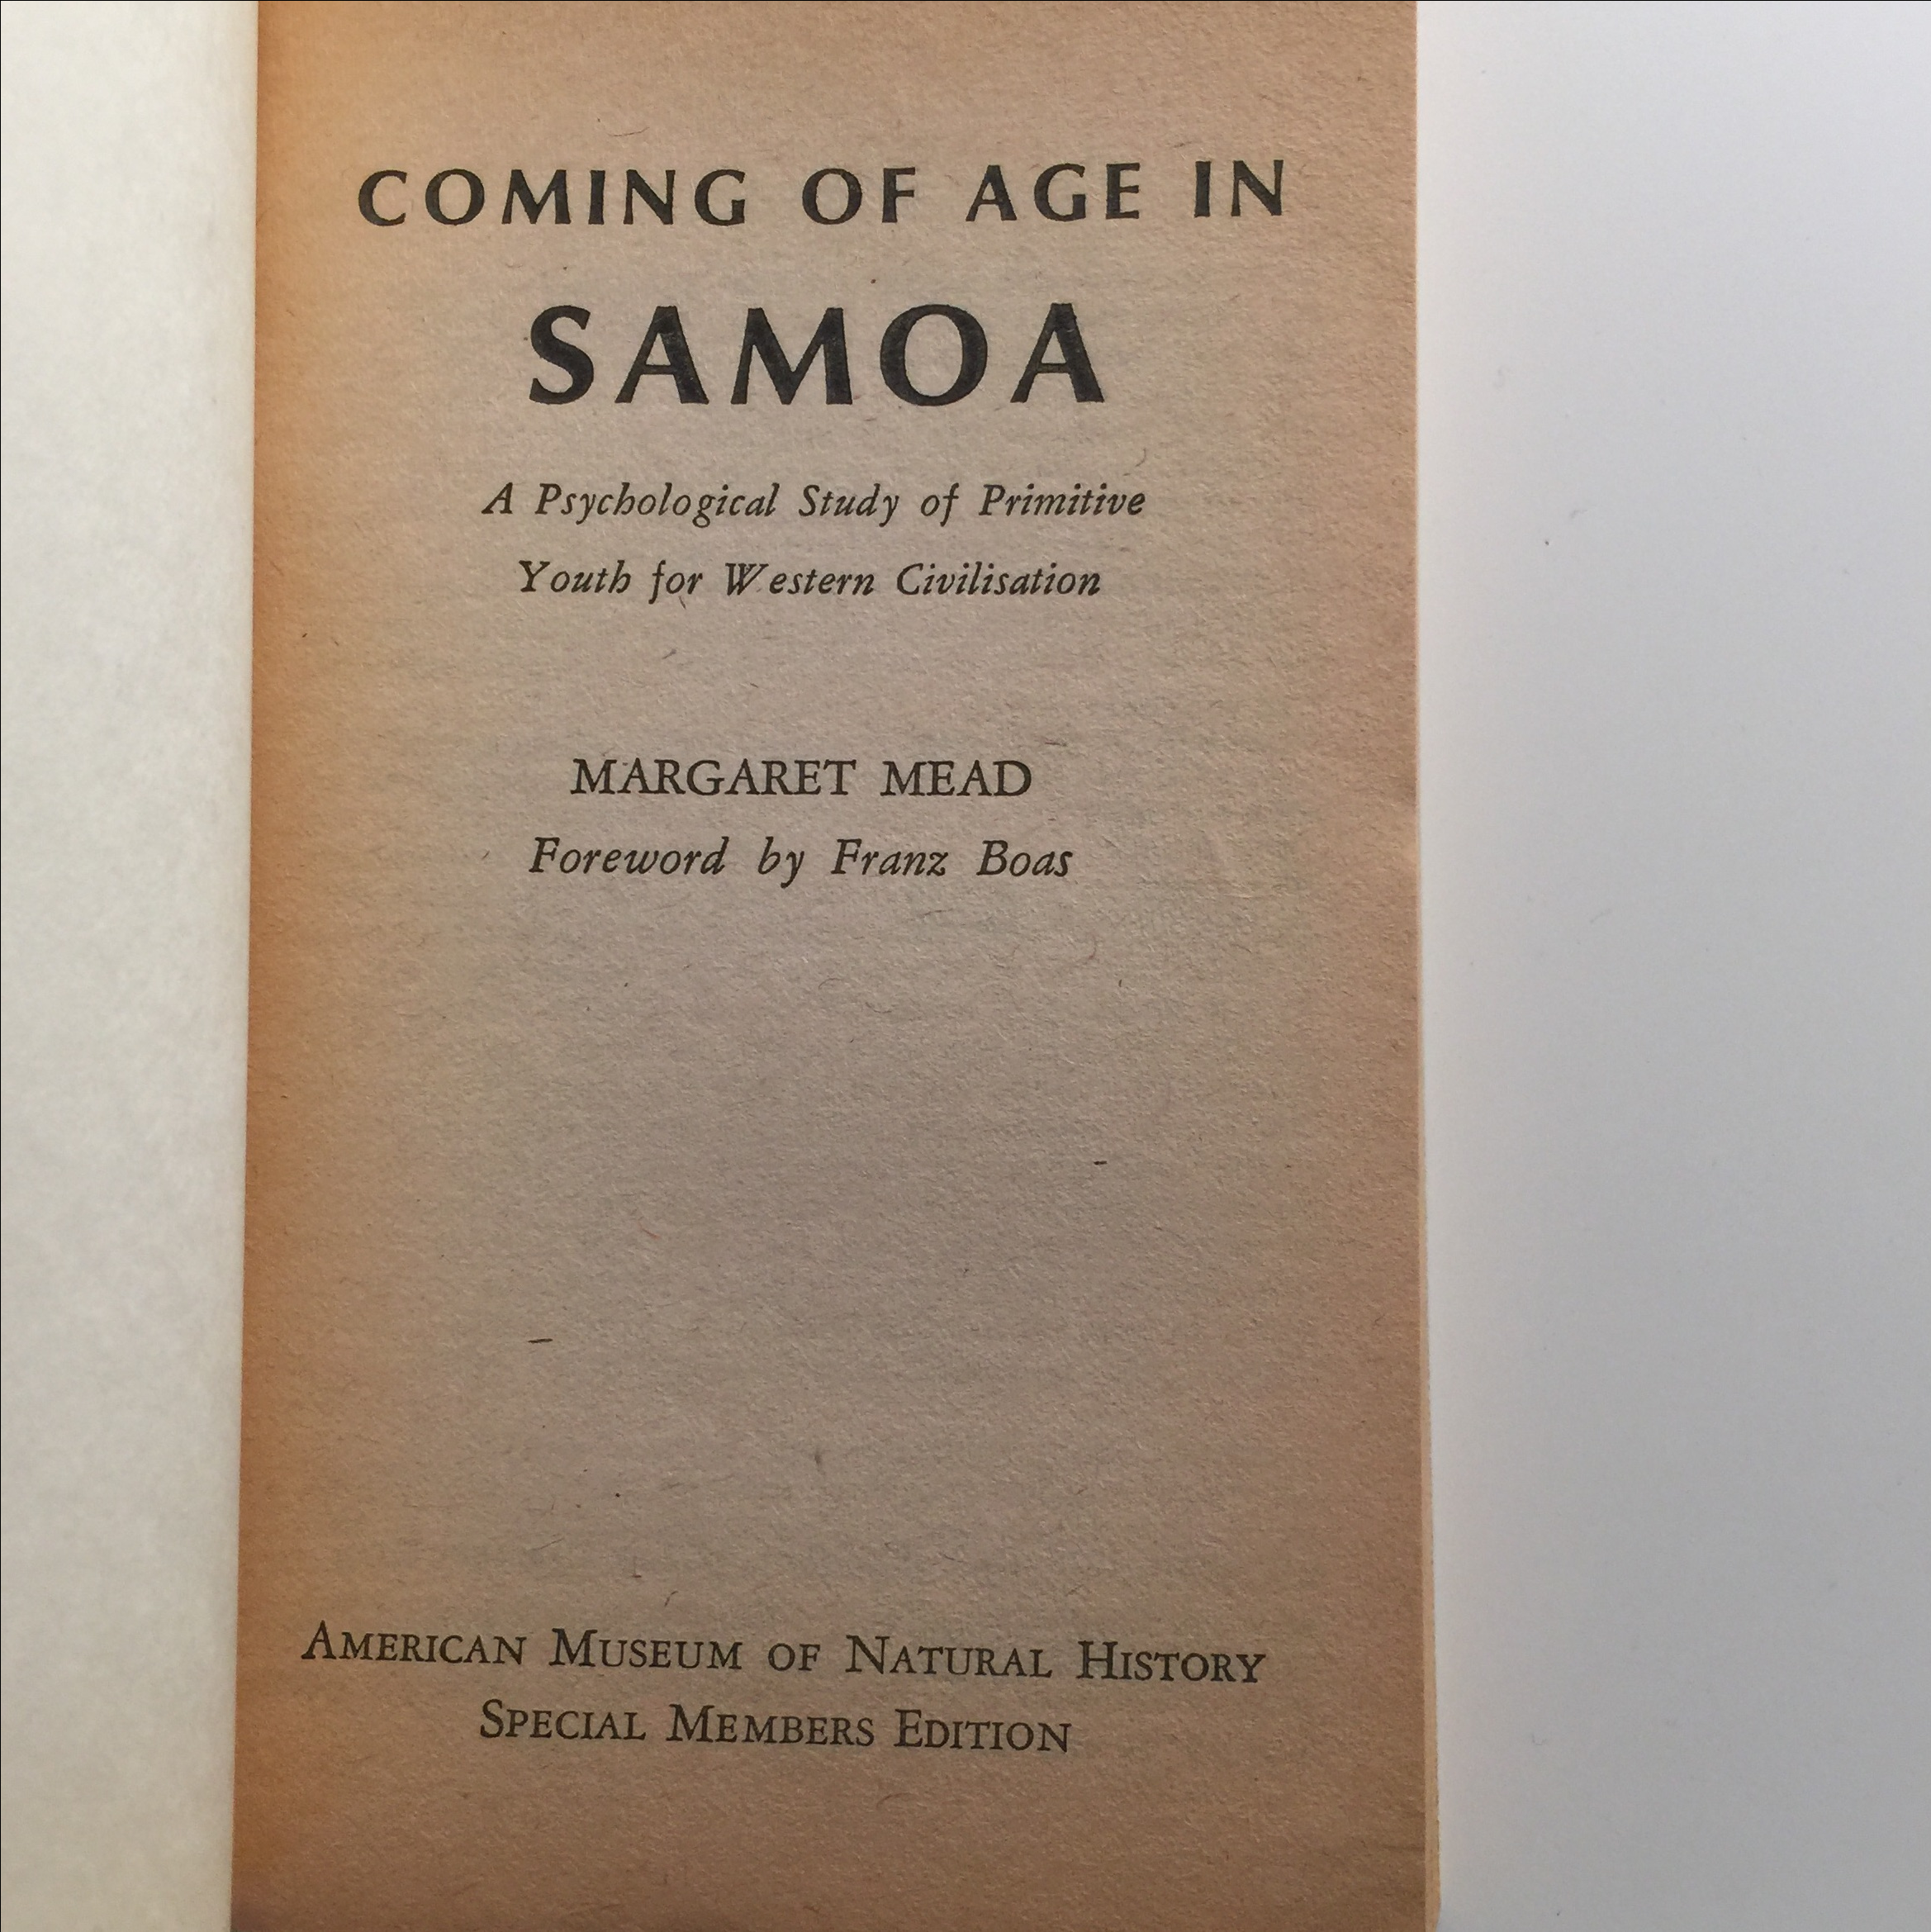 coming of age in samoa Essay coming of age in somoa: margaret meads coming of age in samoa, which was actually her doctoral dissertation, was compiled in a period of six months starting in 1925 through it, people were given a look at a society not affected by the problems of 20th century.